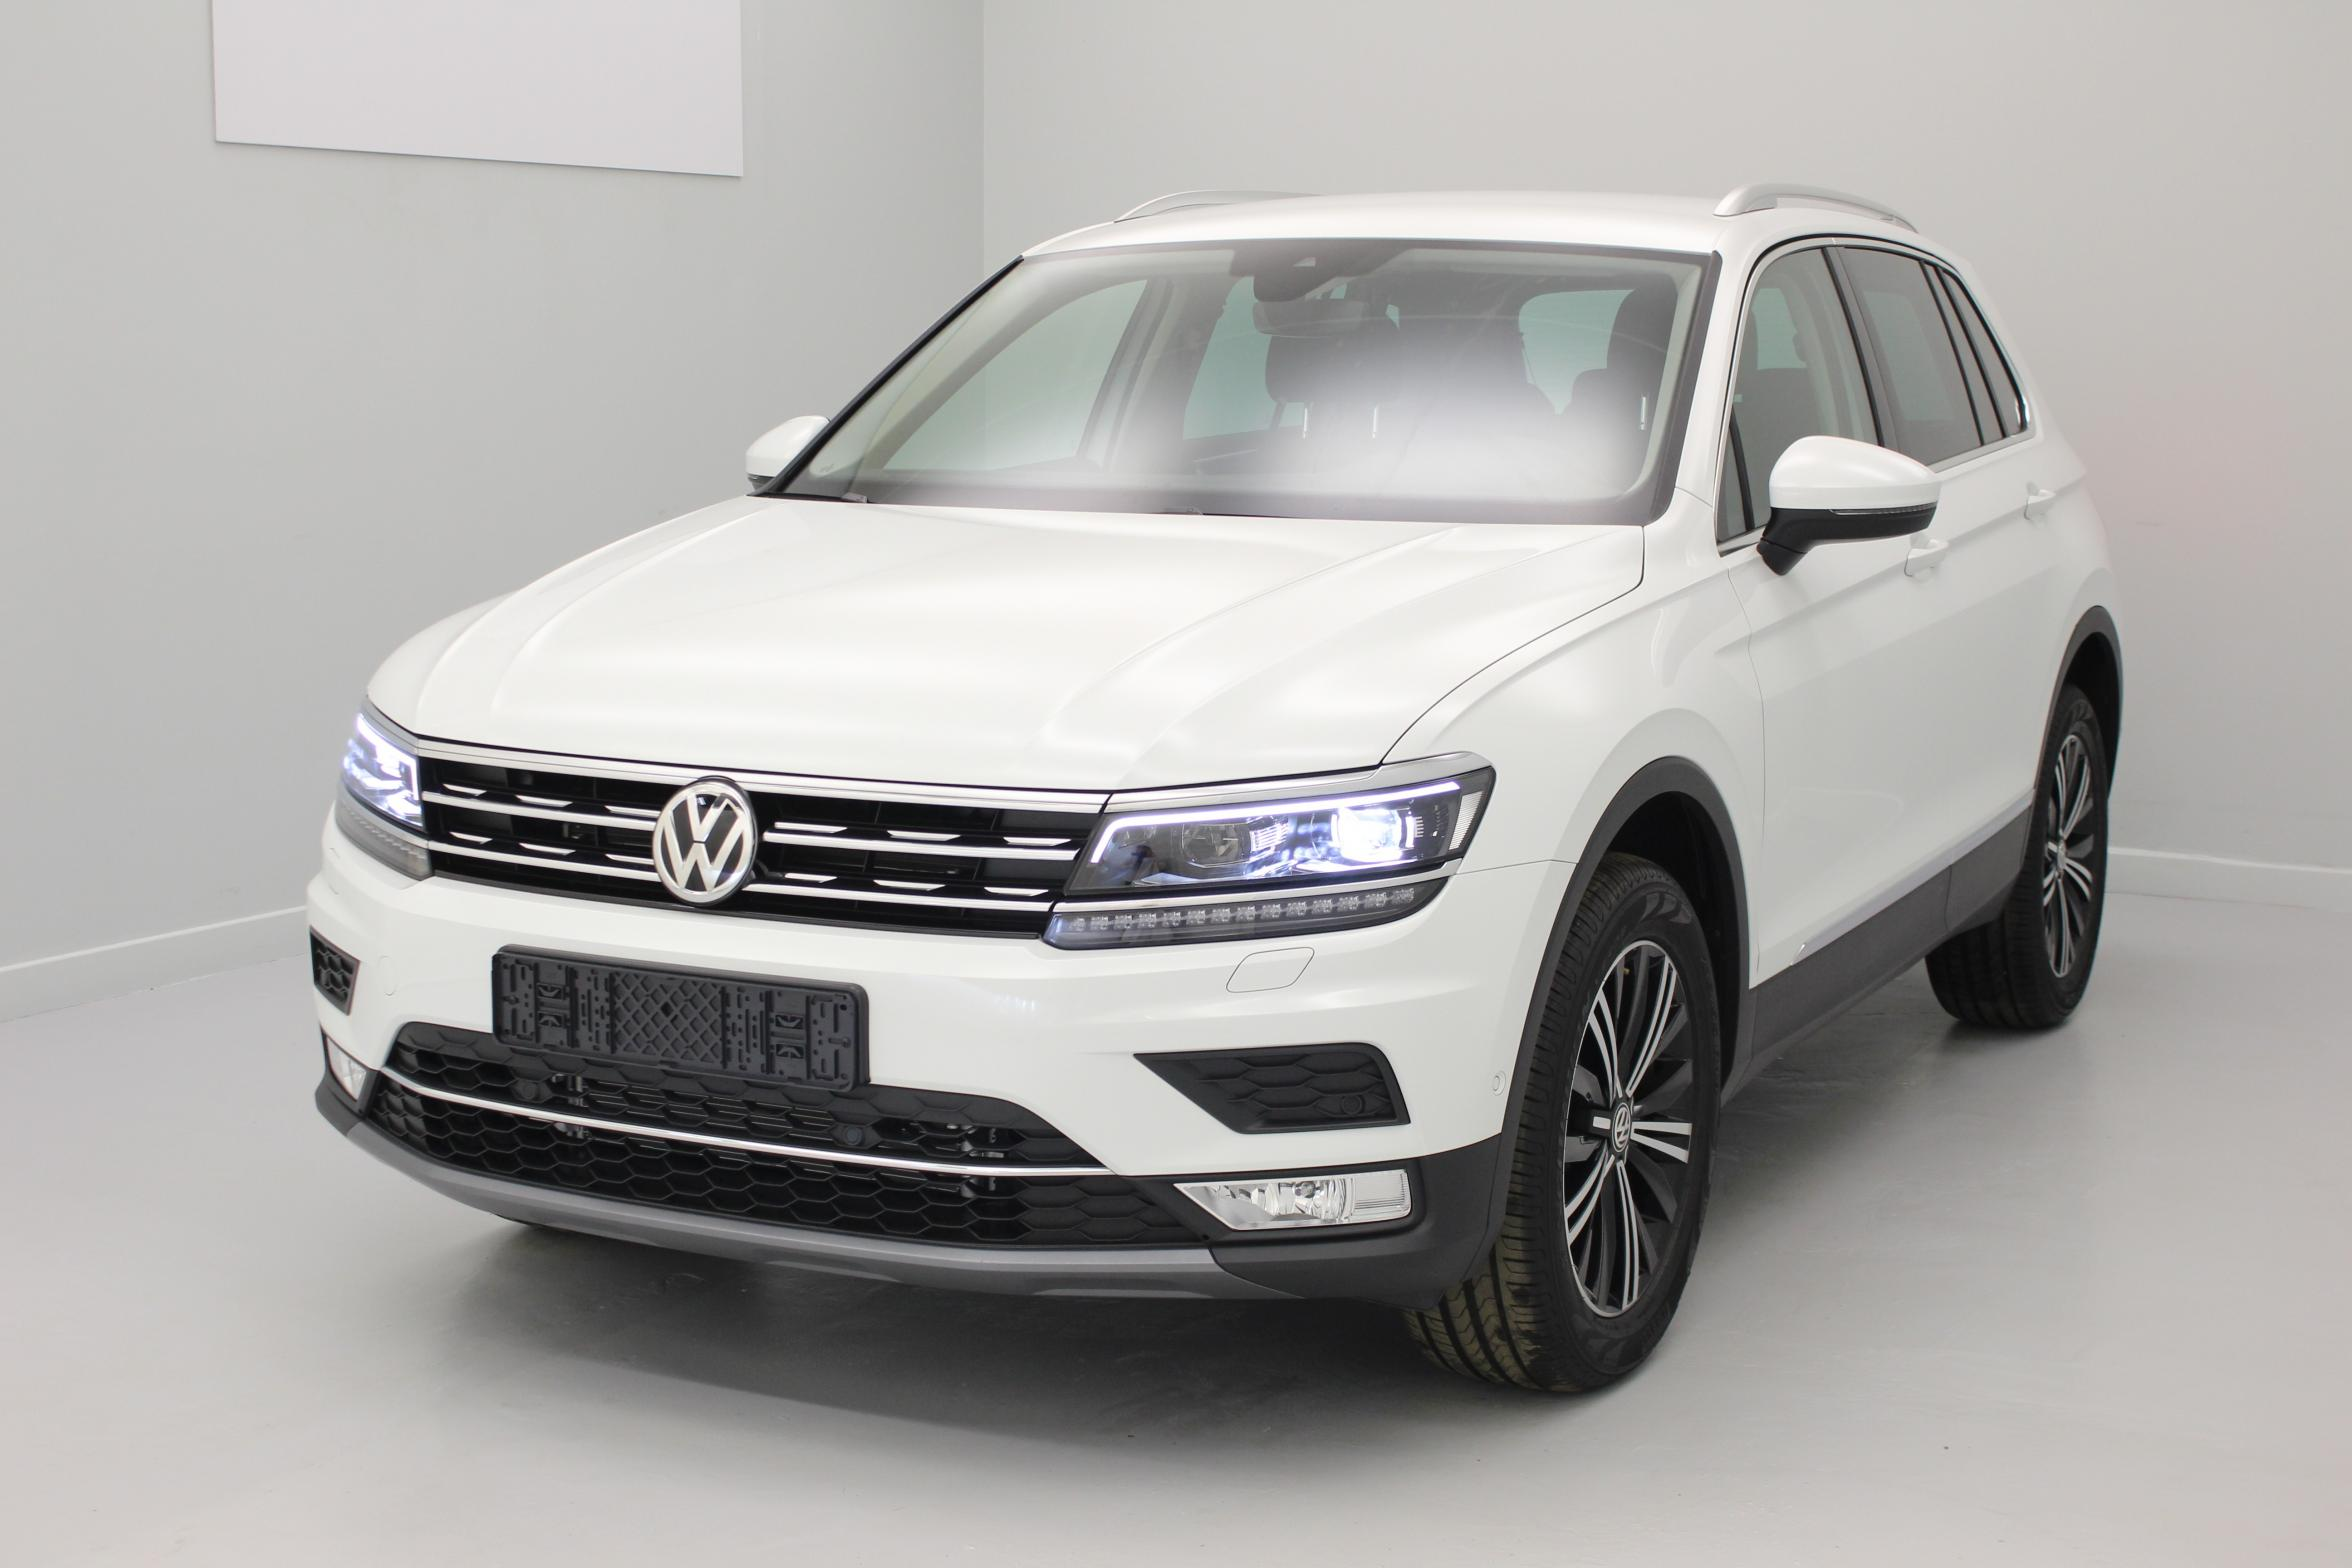 volkswagen nouveau tiguan 2 0 tdi 150 bmt dsg7 4motion. Black Bedroom Furniture Sets. Home Design Ideas